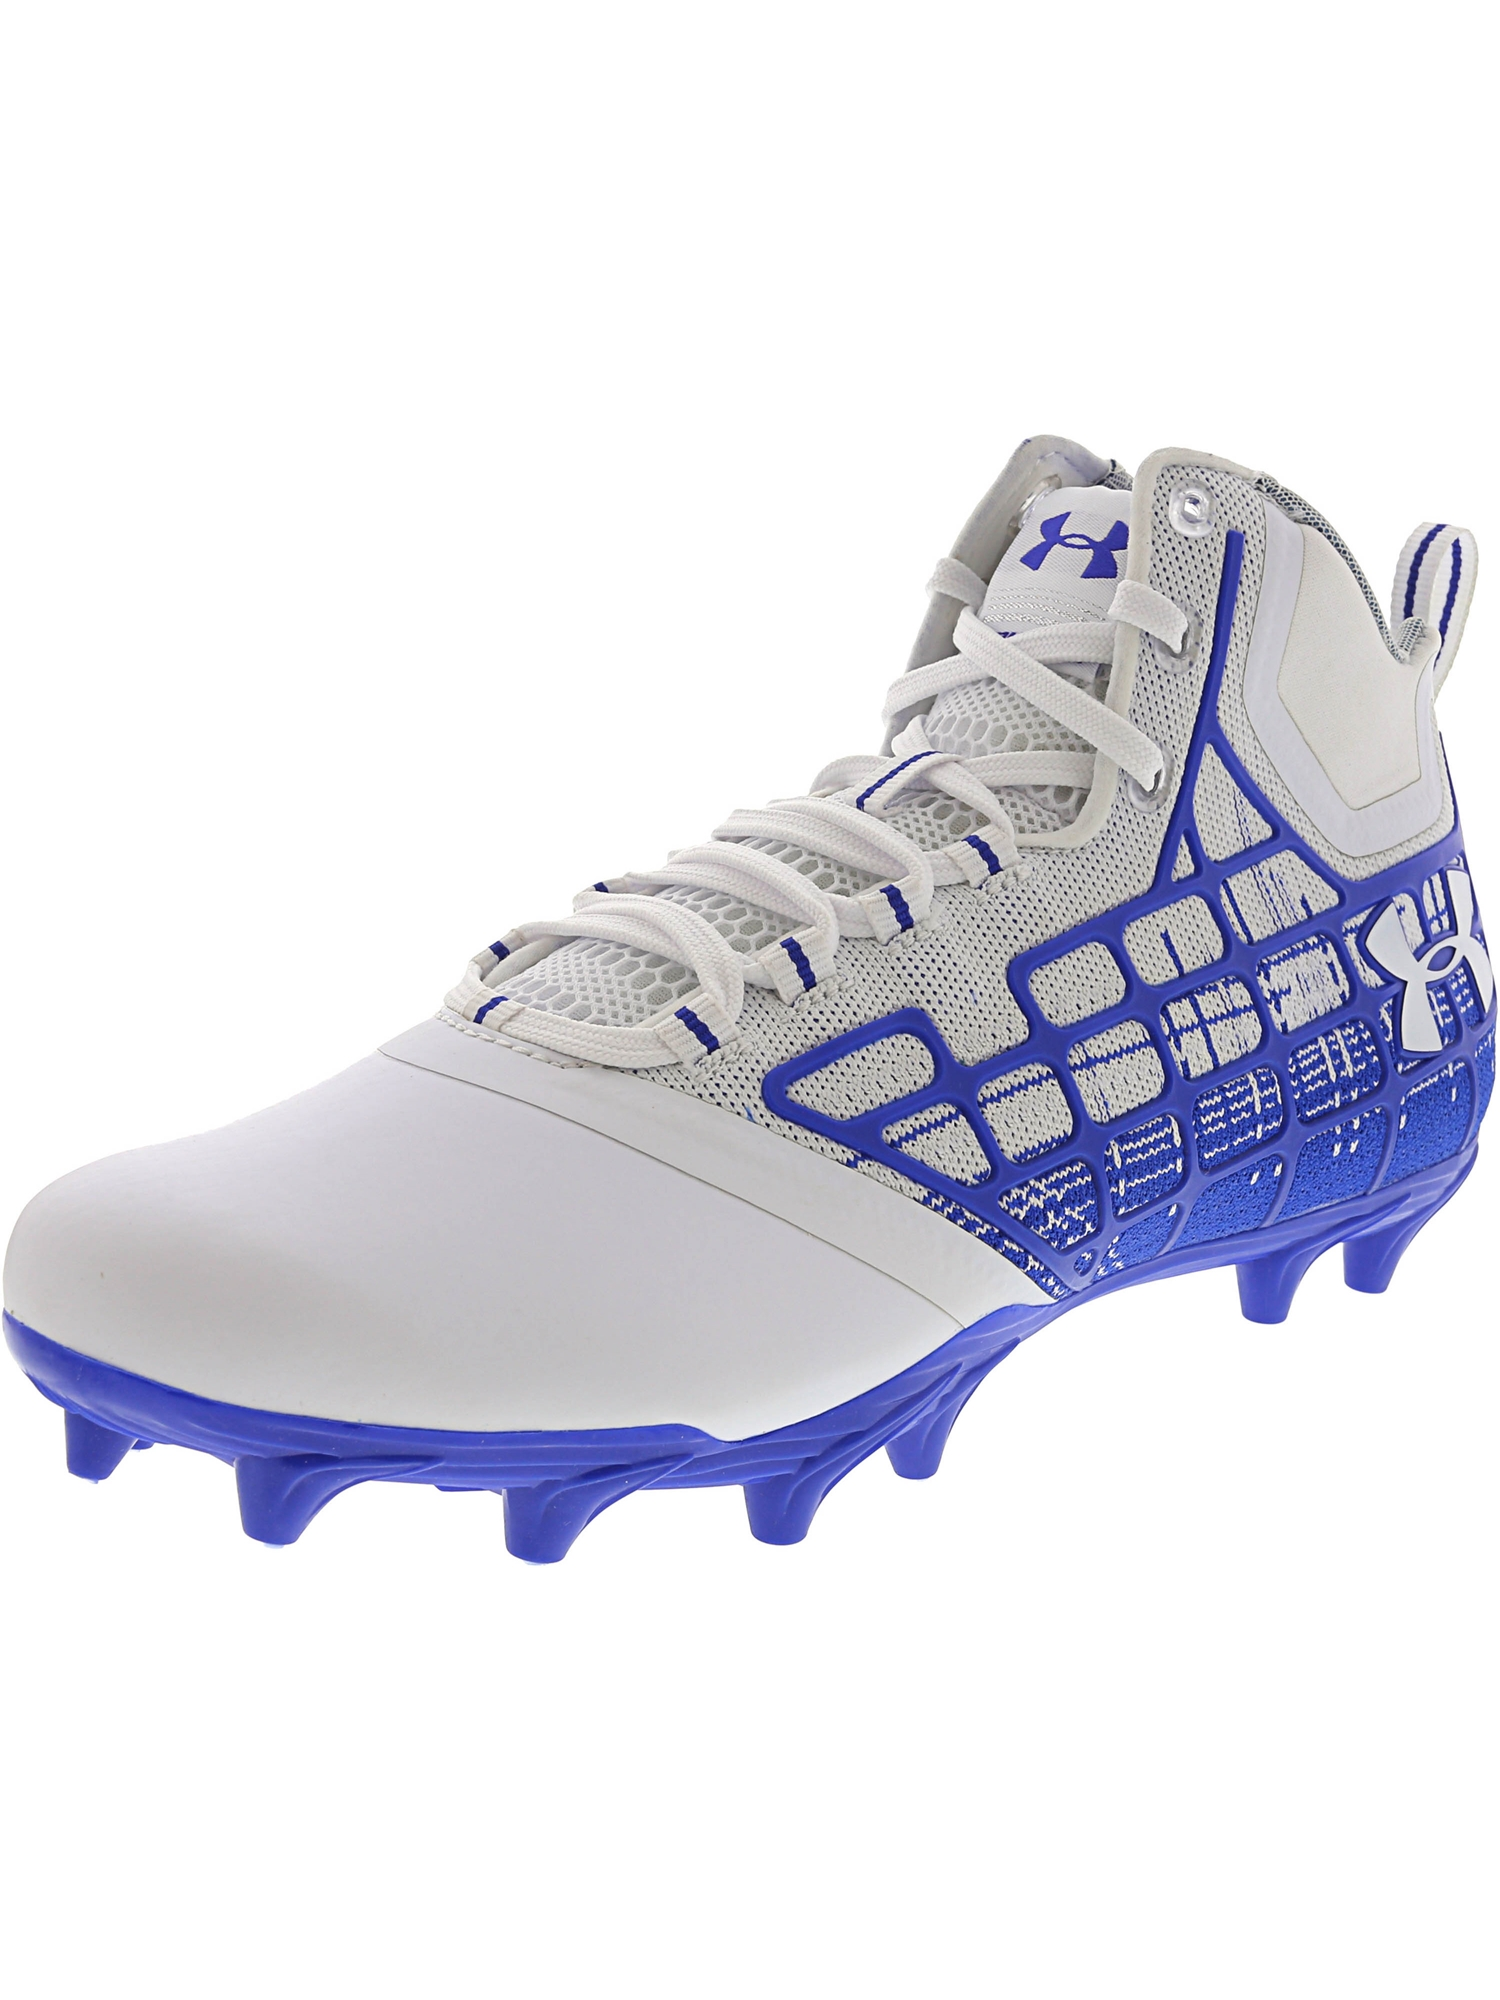 a7dead5b691 Under Armour Men s Banshee Mid MC Lacrosse Shoe